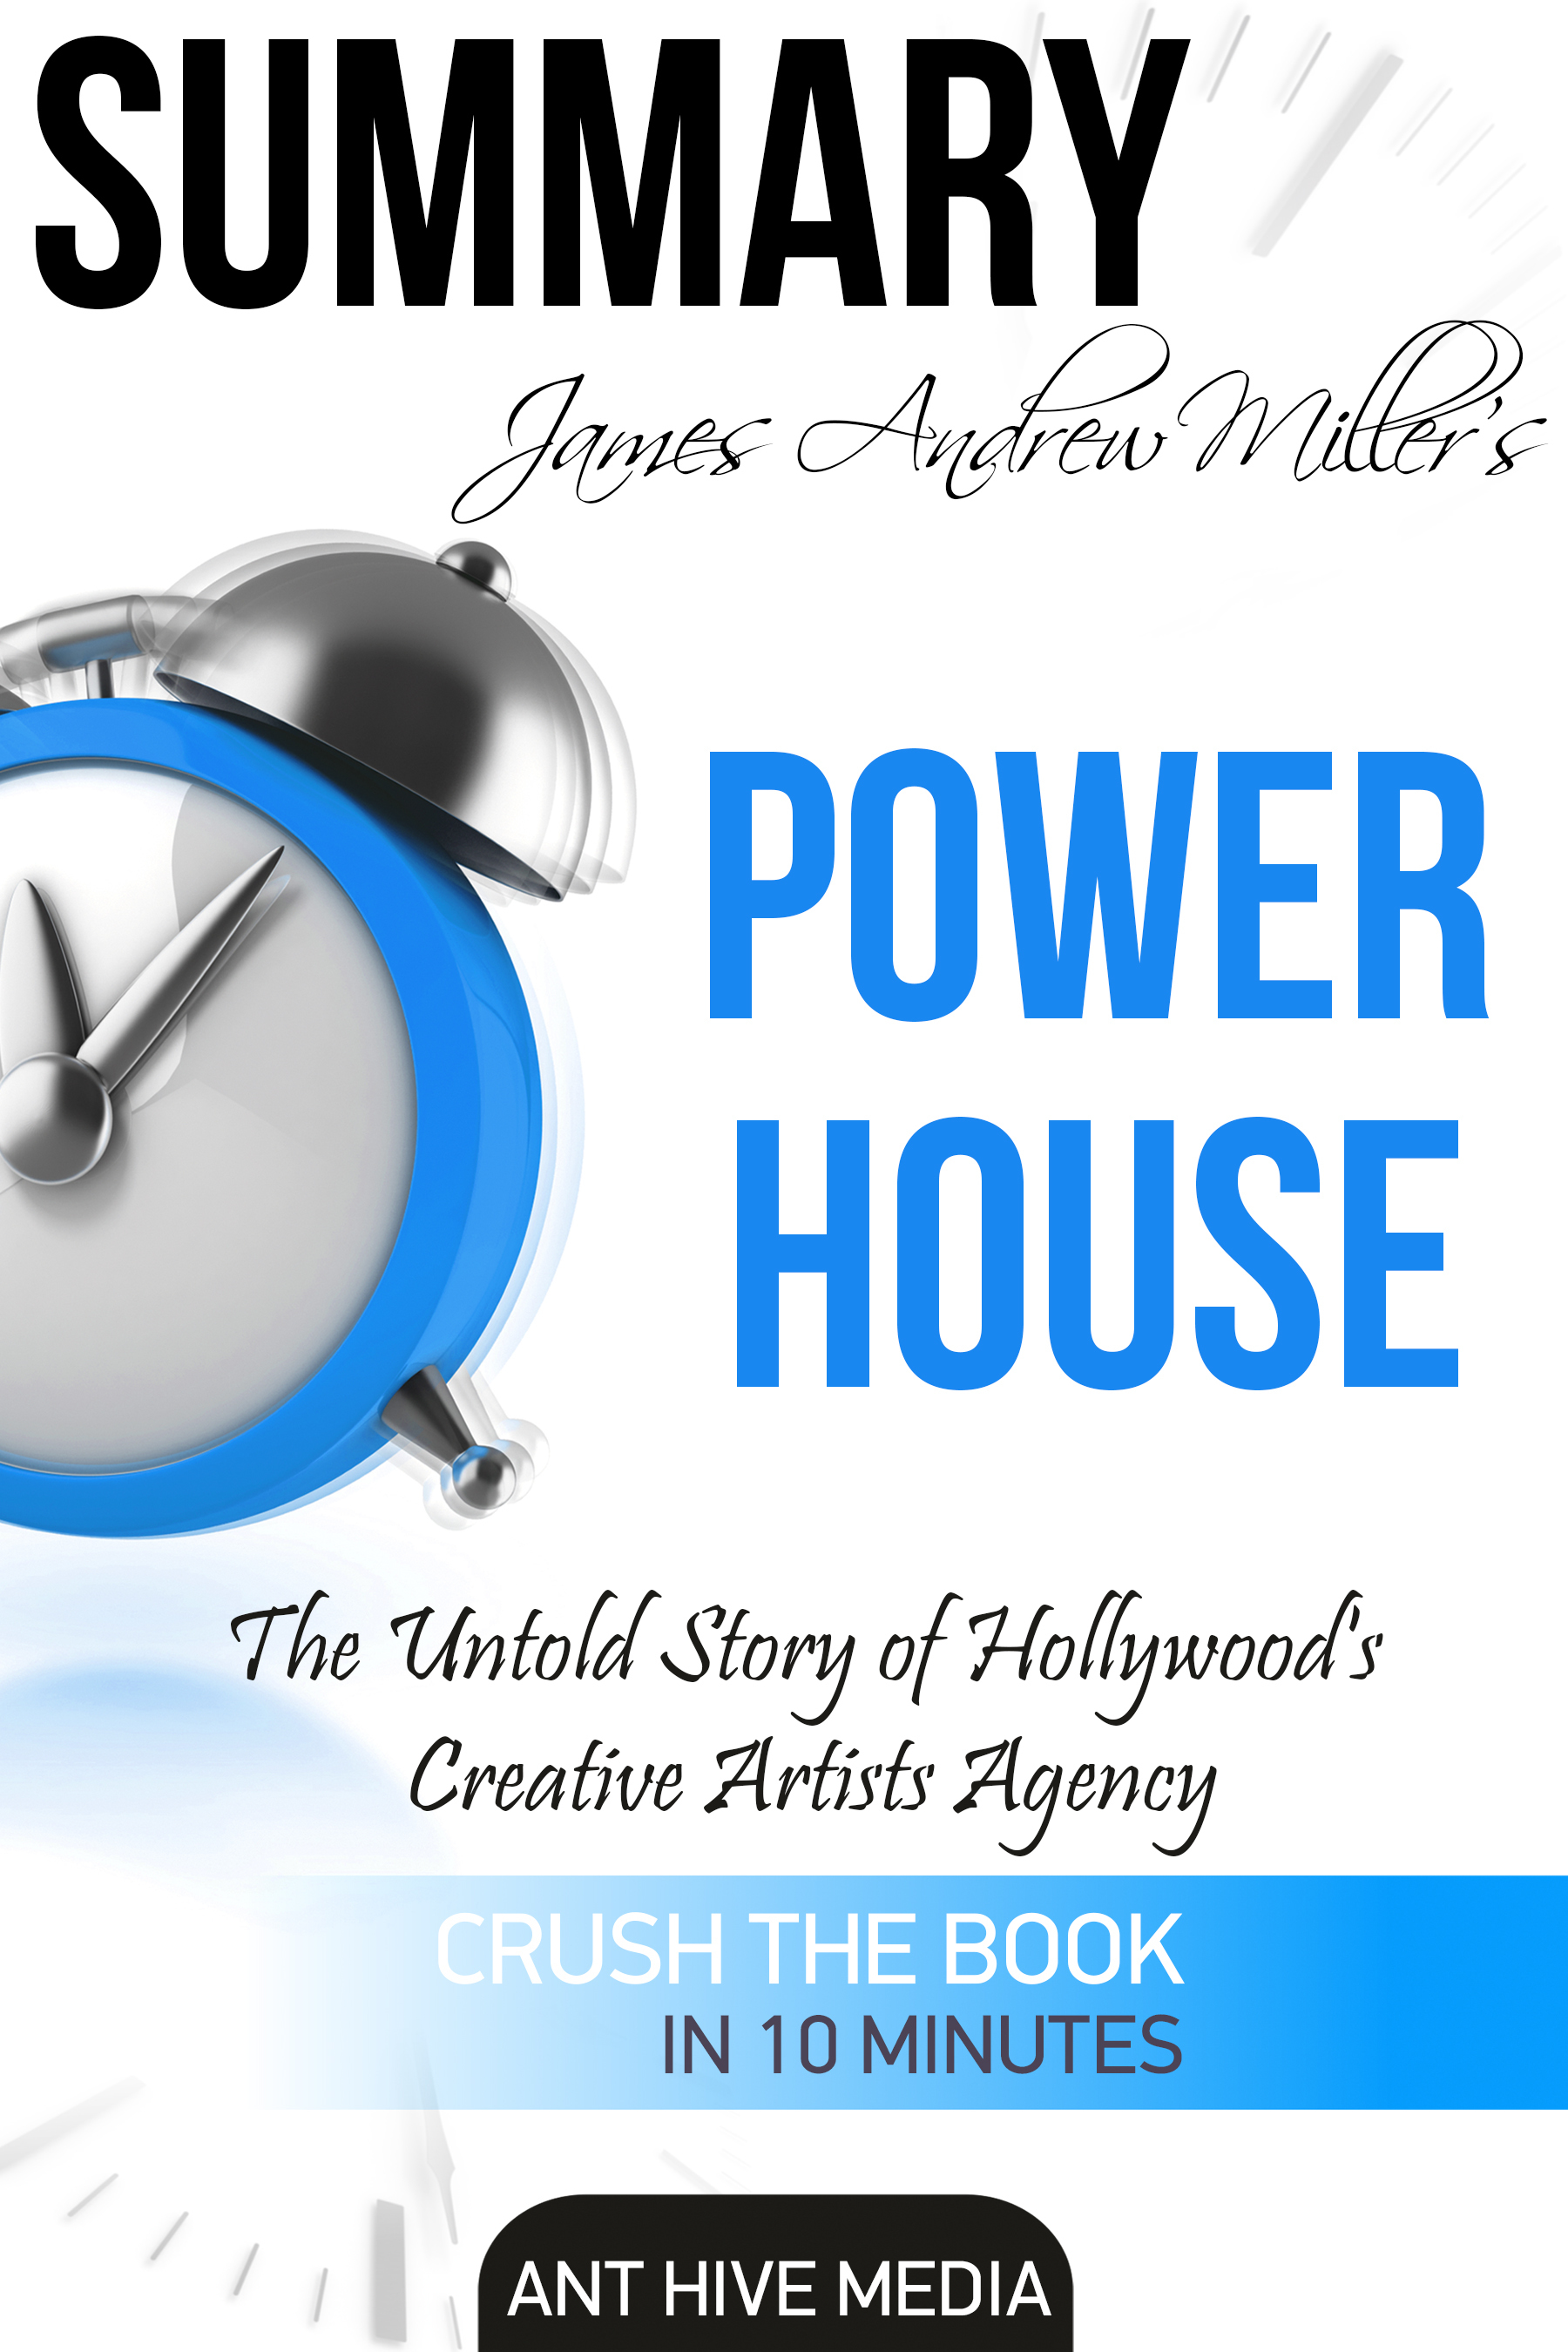 James Andrew Miller's Powerhouse: The Untold Story of Hollywood's Creative Artists Agency | Summary